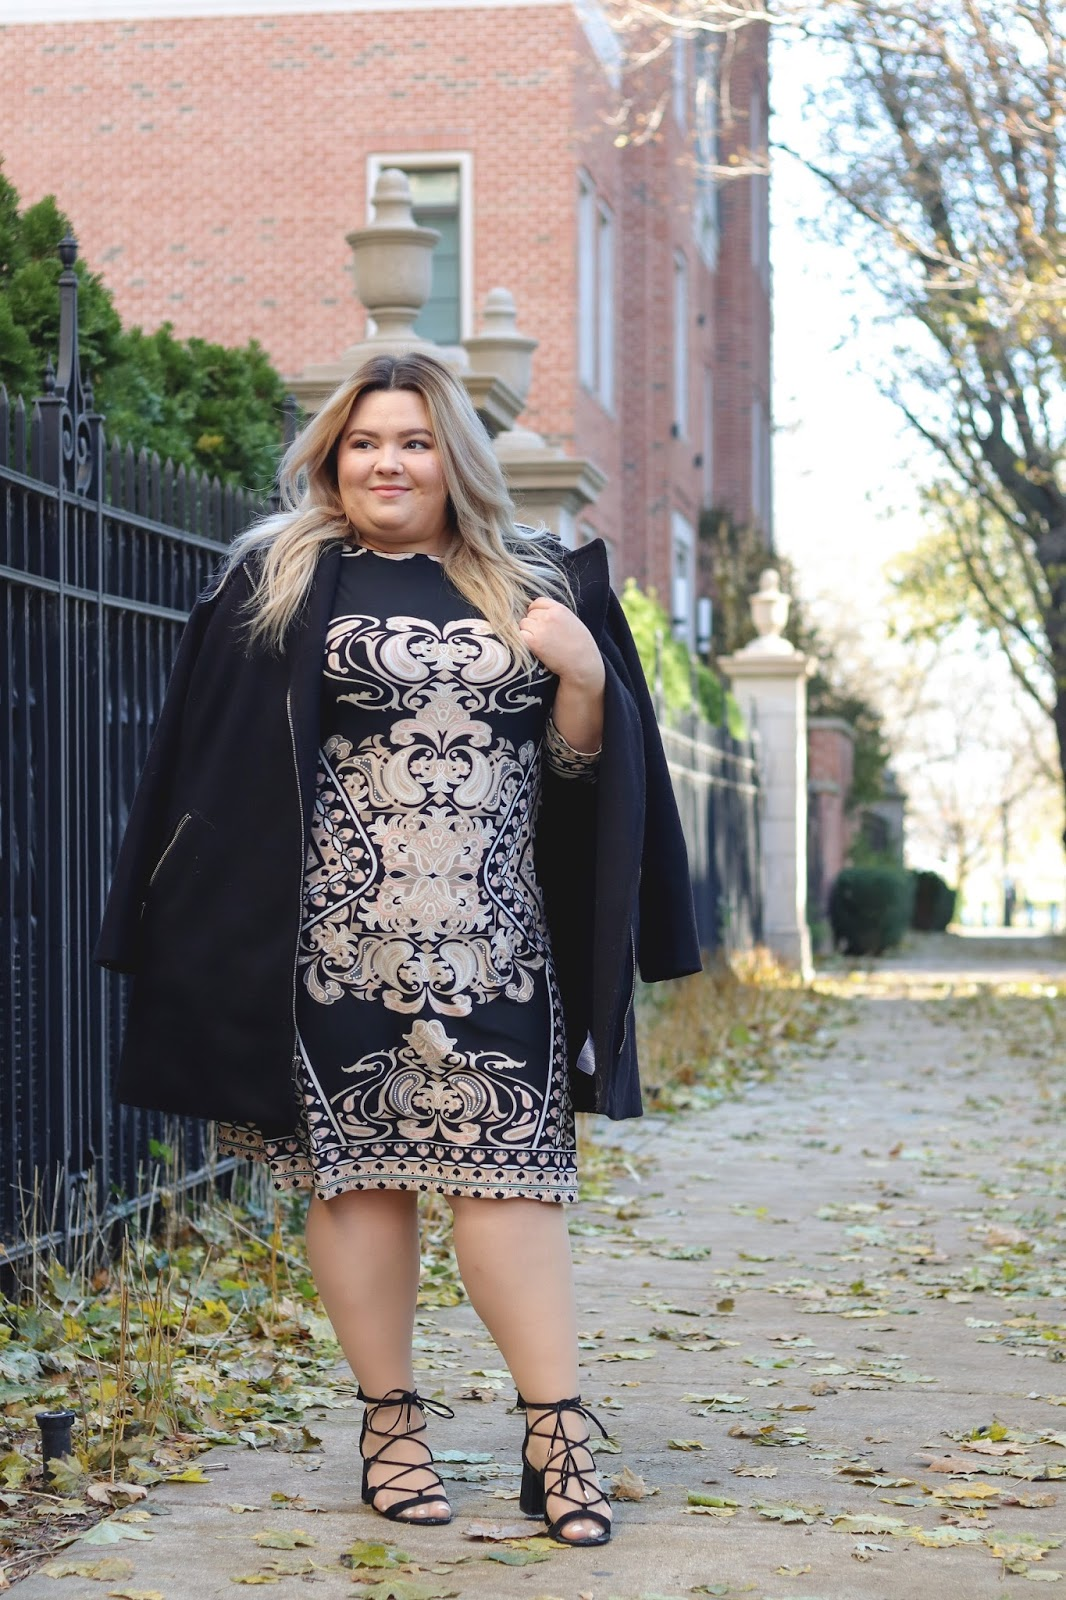 plus size fashion blogger, chicago blogger, chicago fashion blogger, natalie craig, natalie in the city, chicago plus size fashion blogger, fashion blogger, just my size, JMS, form fitting plus size clothing, affordable plus size clothing, plus size dresses, flattering plus size dresses, curves and confidence, fatshion